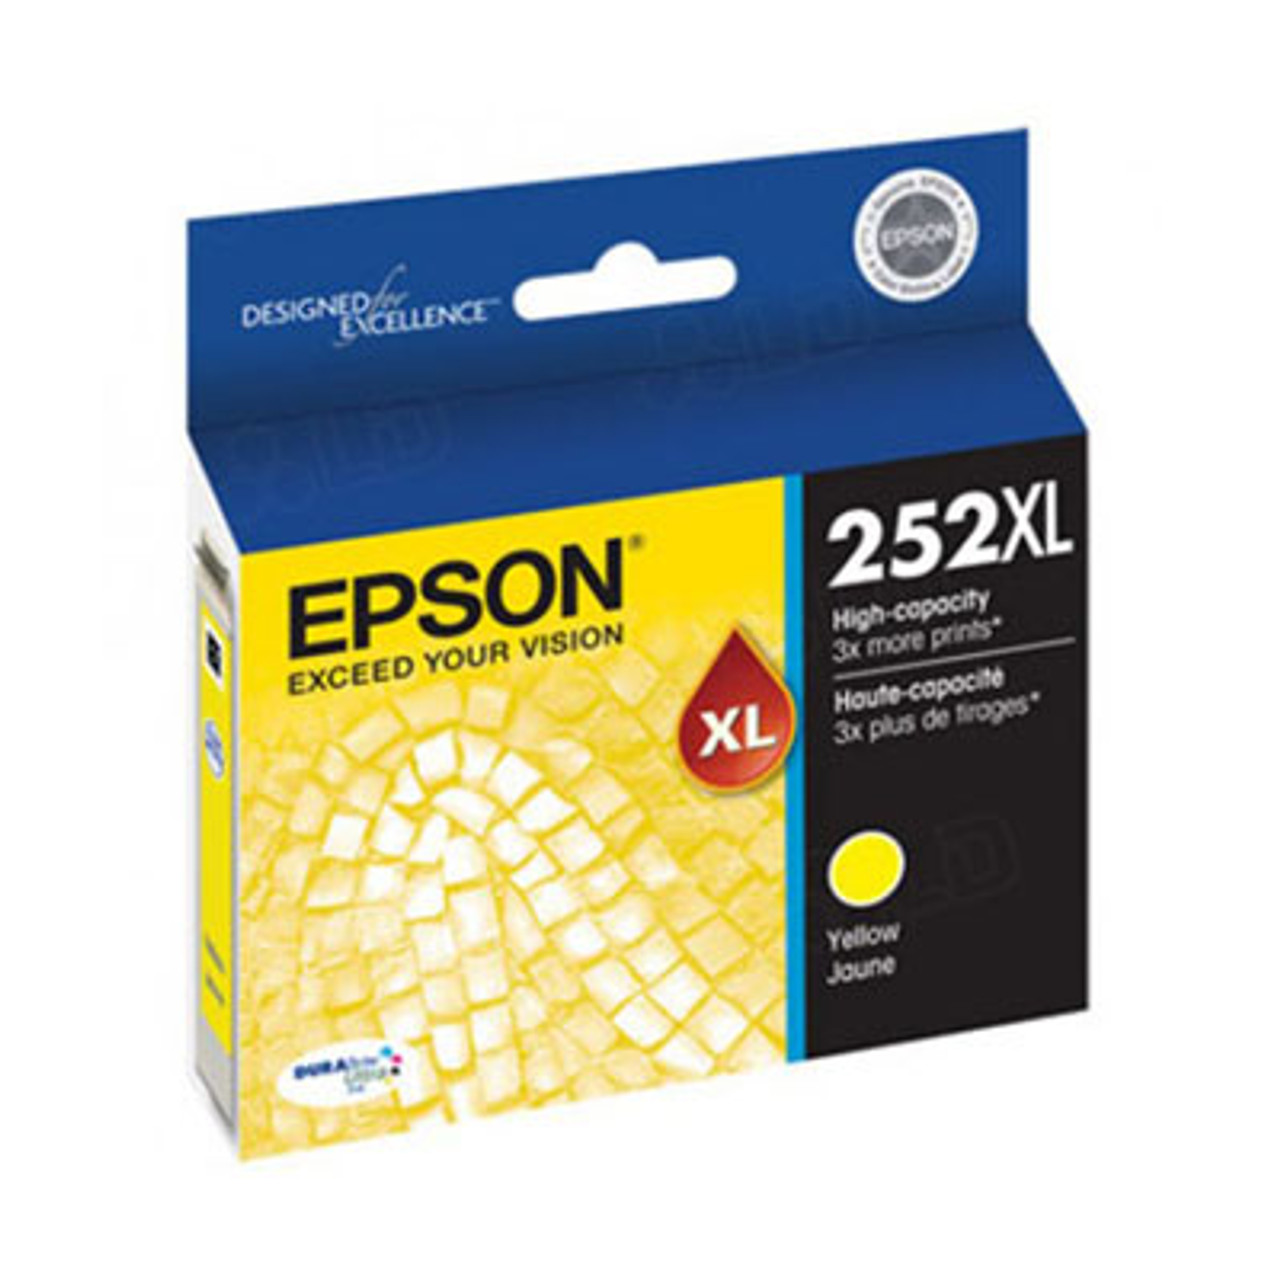 Image for Epson 252XL High Yield Yellow Ink Cartridge 1,100 pages CX Computer Superstore